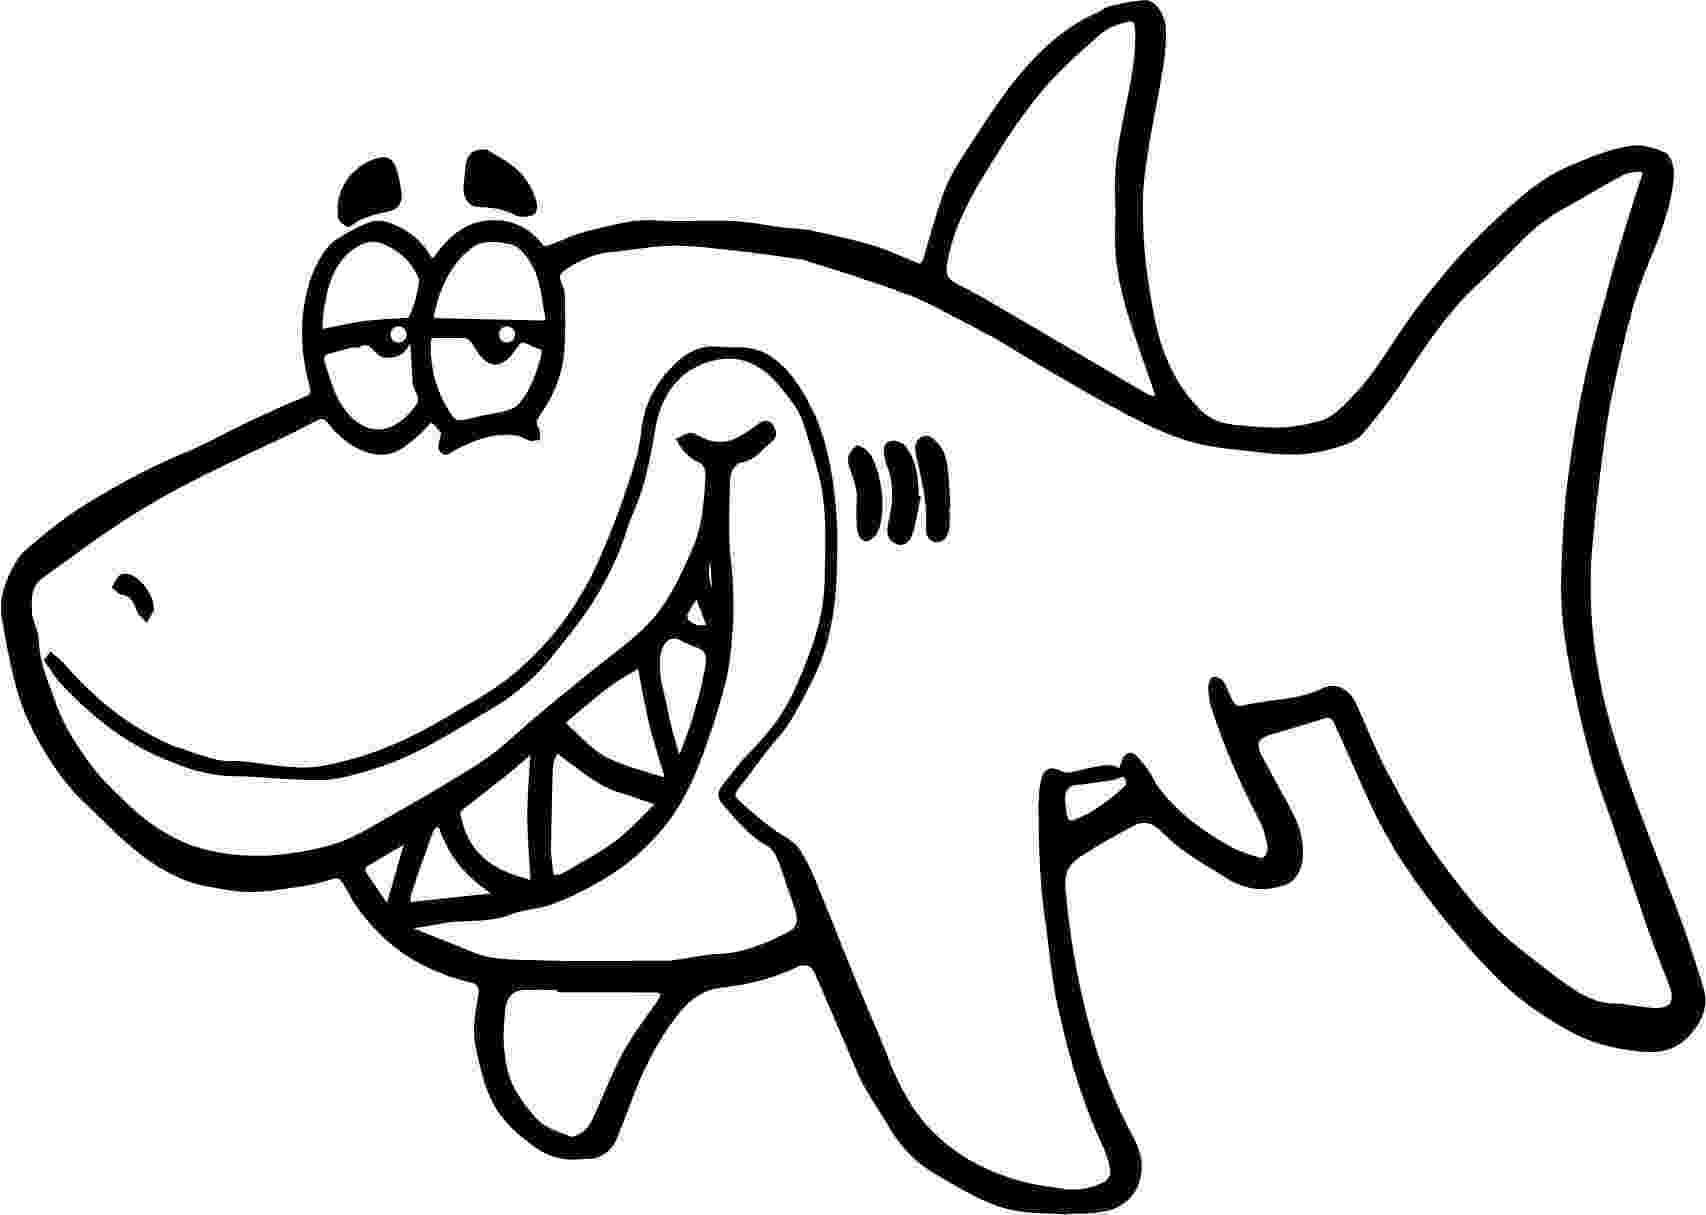 shark colouring pictures to print free printable shark coloring pages for kids shark pictures colouring to print